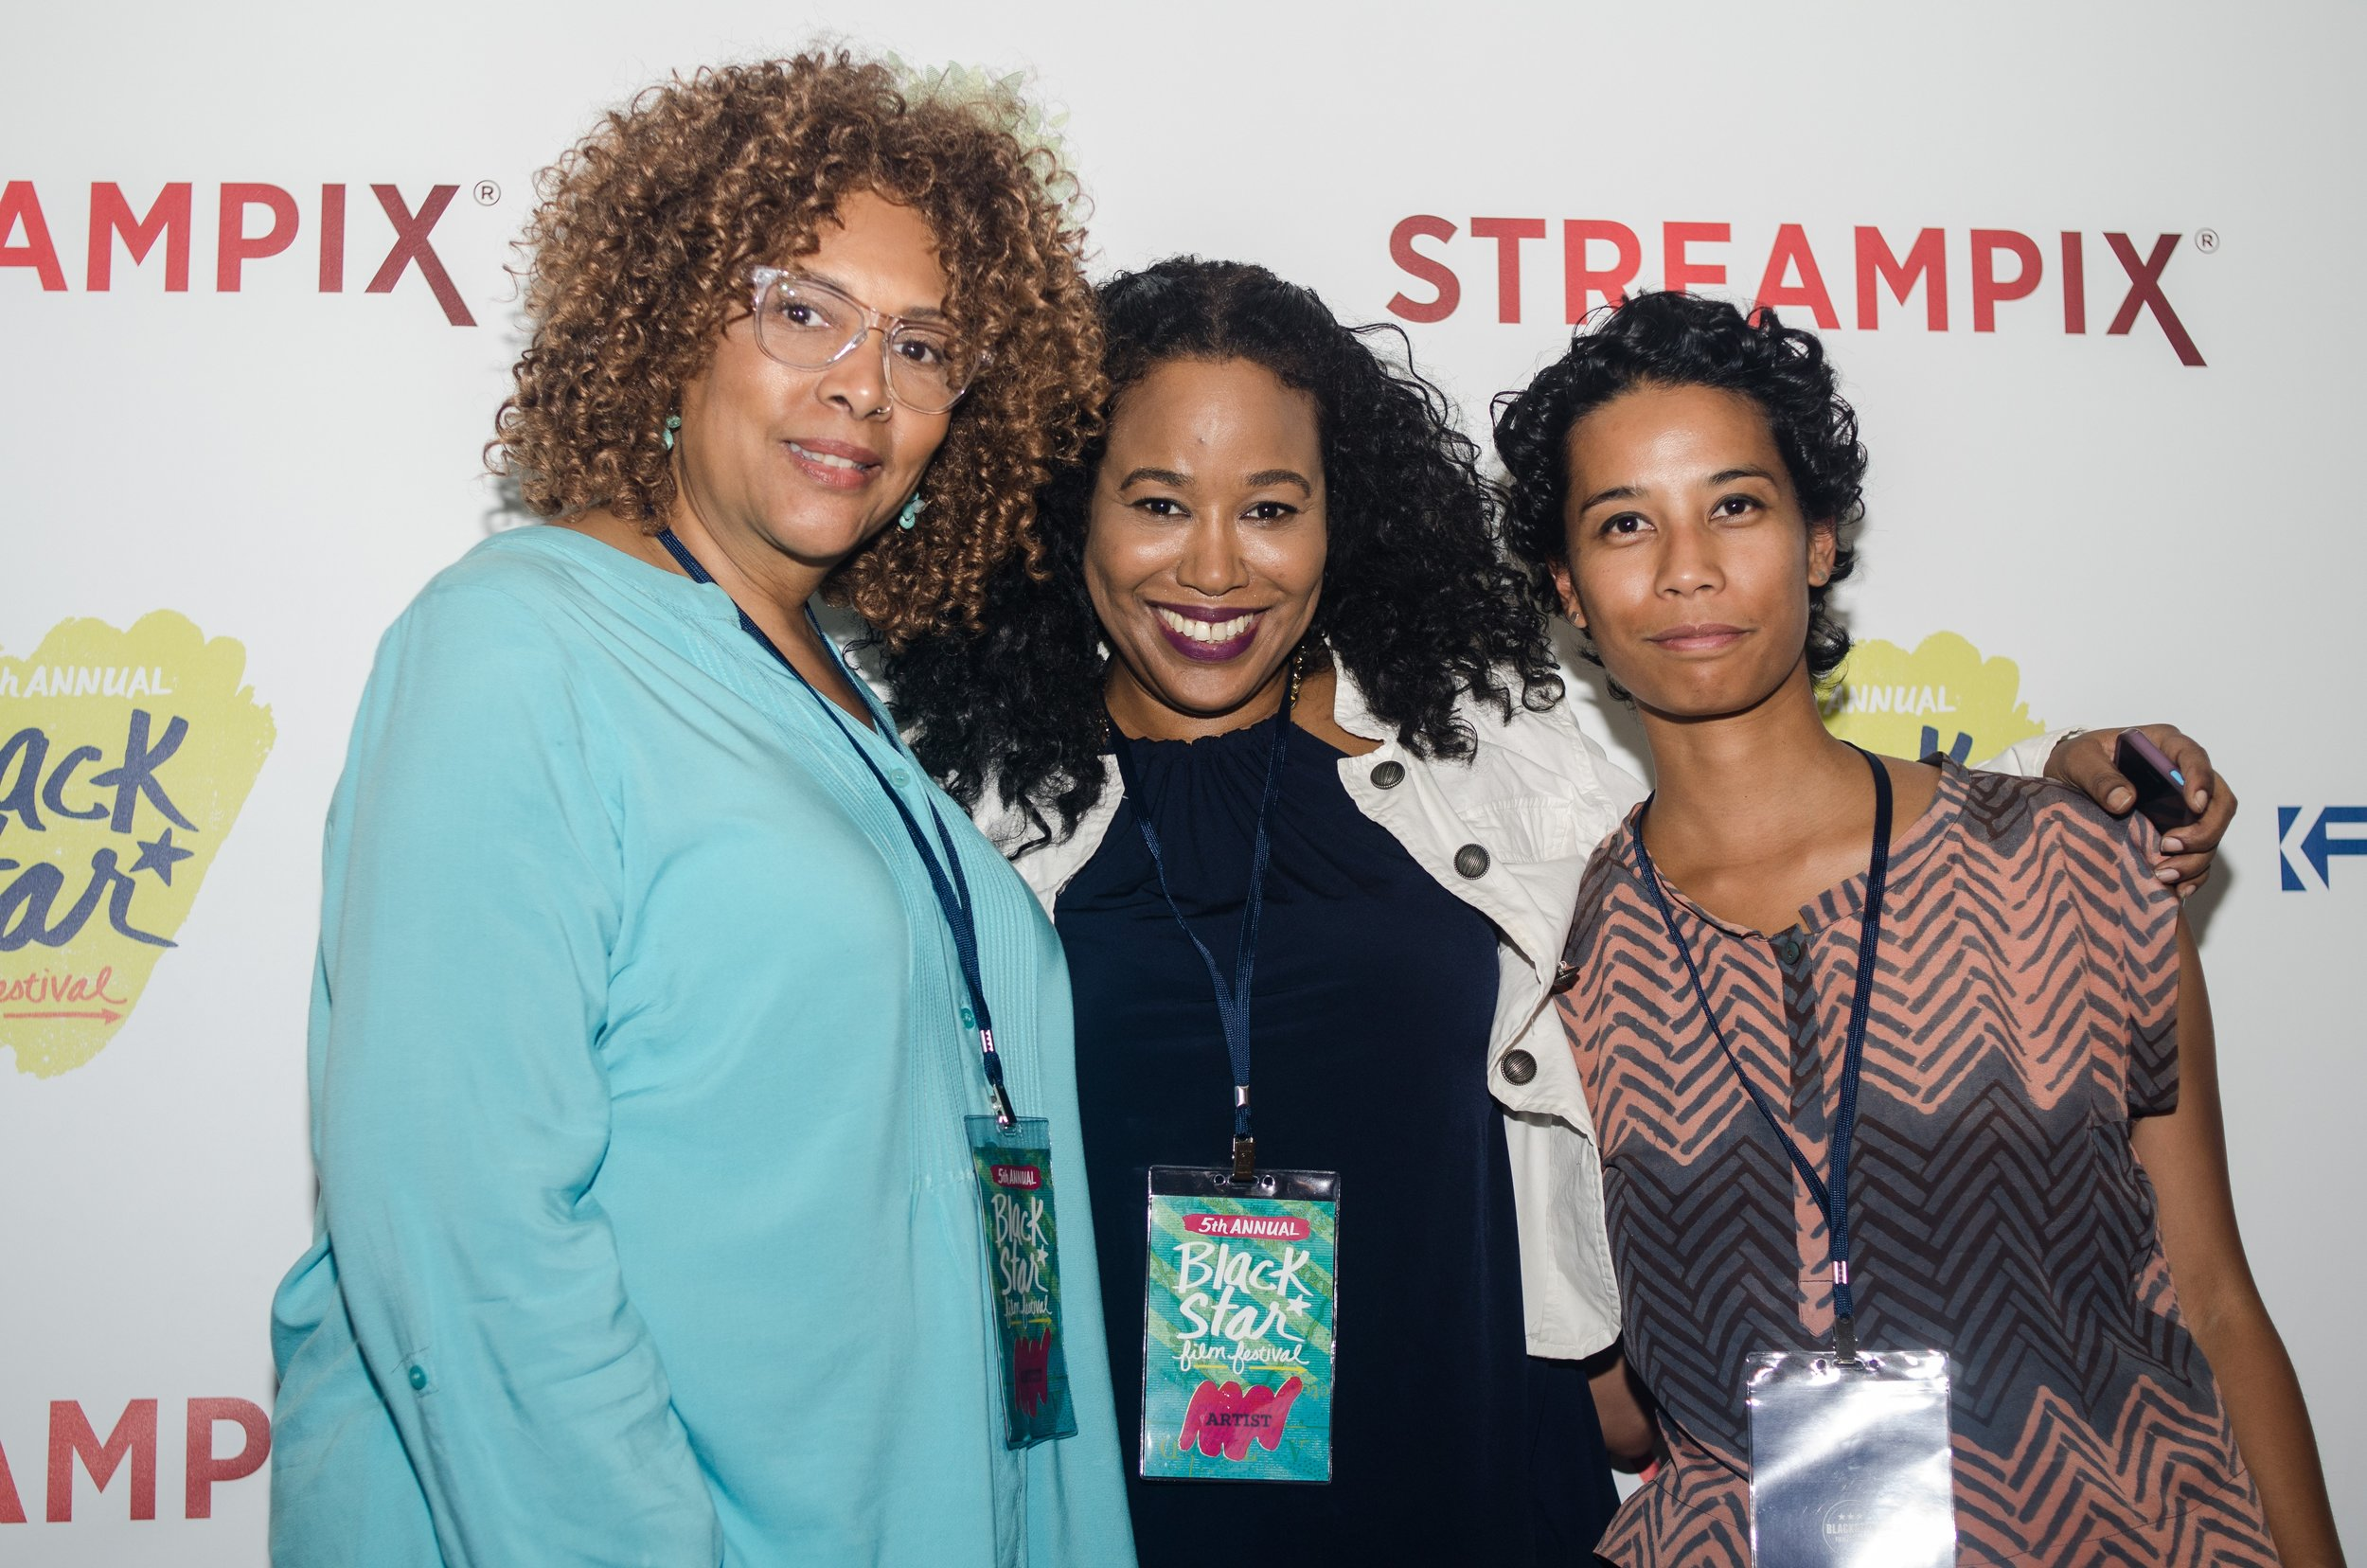 2016 BlackStar Film Festival. With the imitable Julie Dash (Daughters of the Dust) and Sabrina Gordon (BadddDDD Sonia Sanchez).